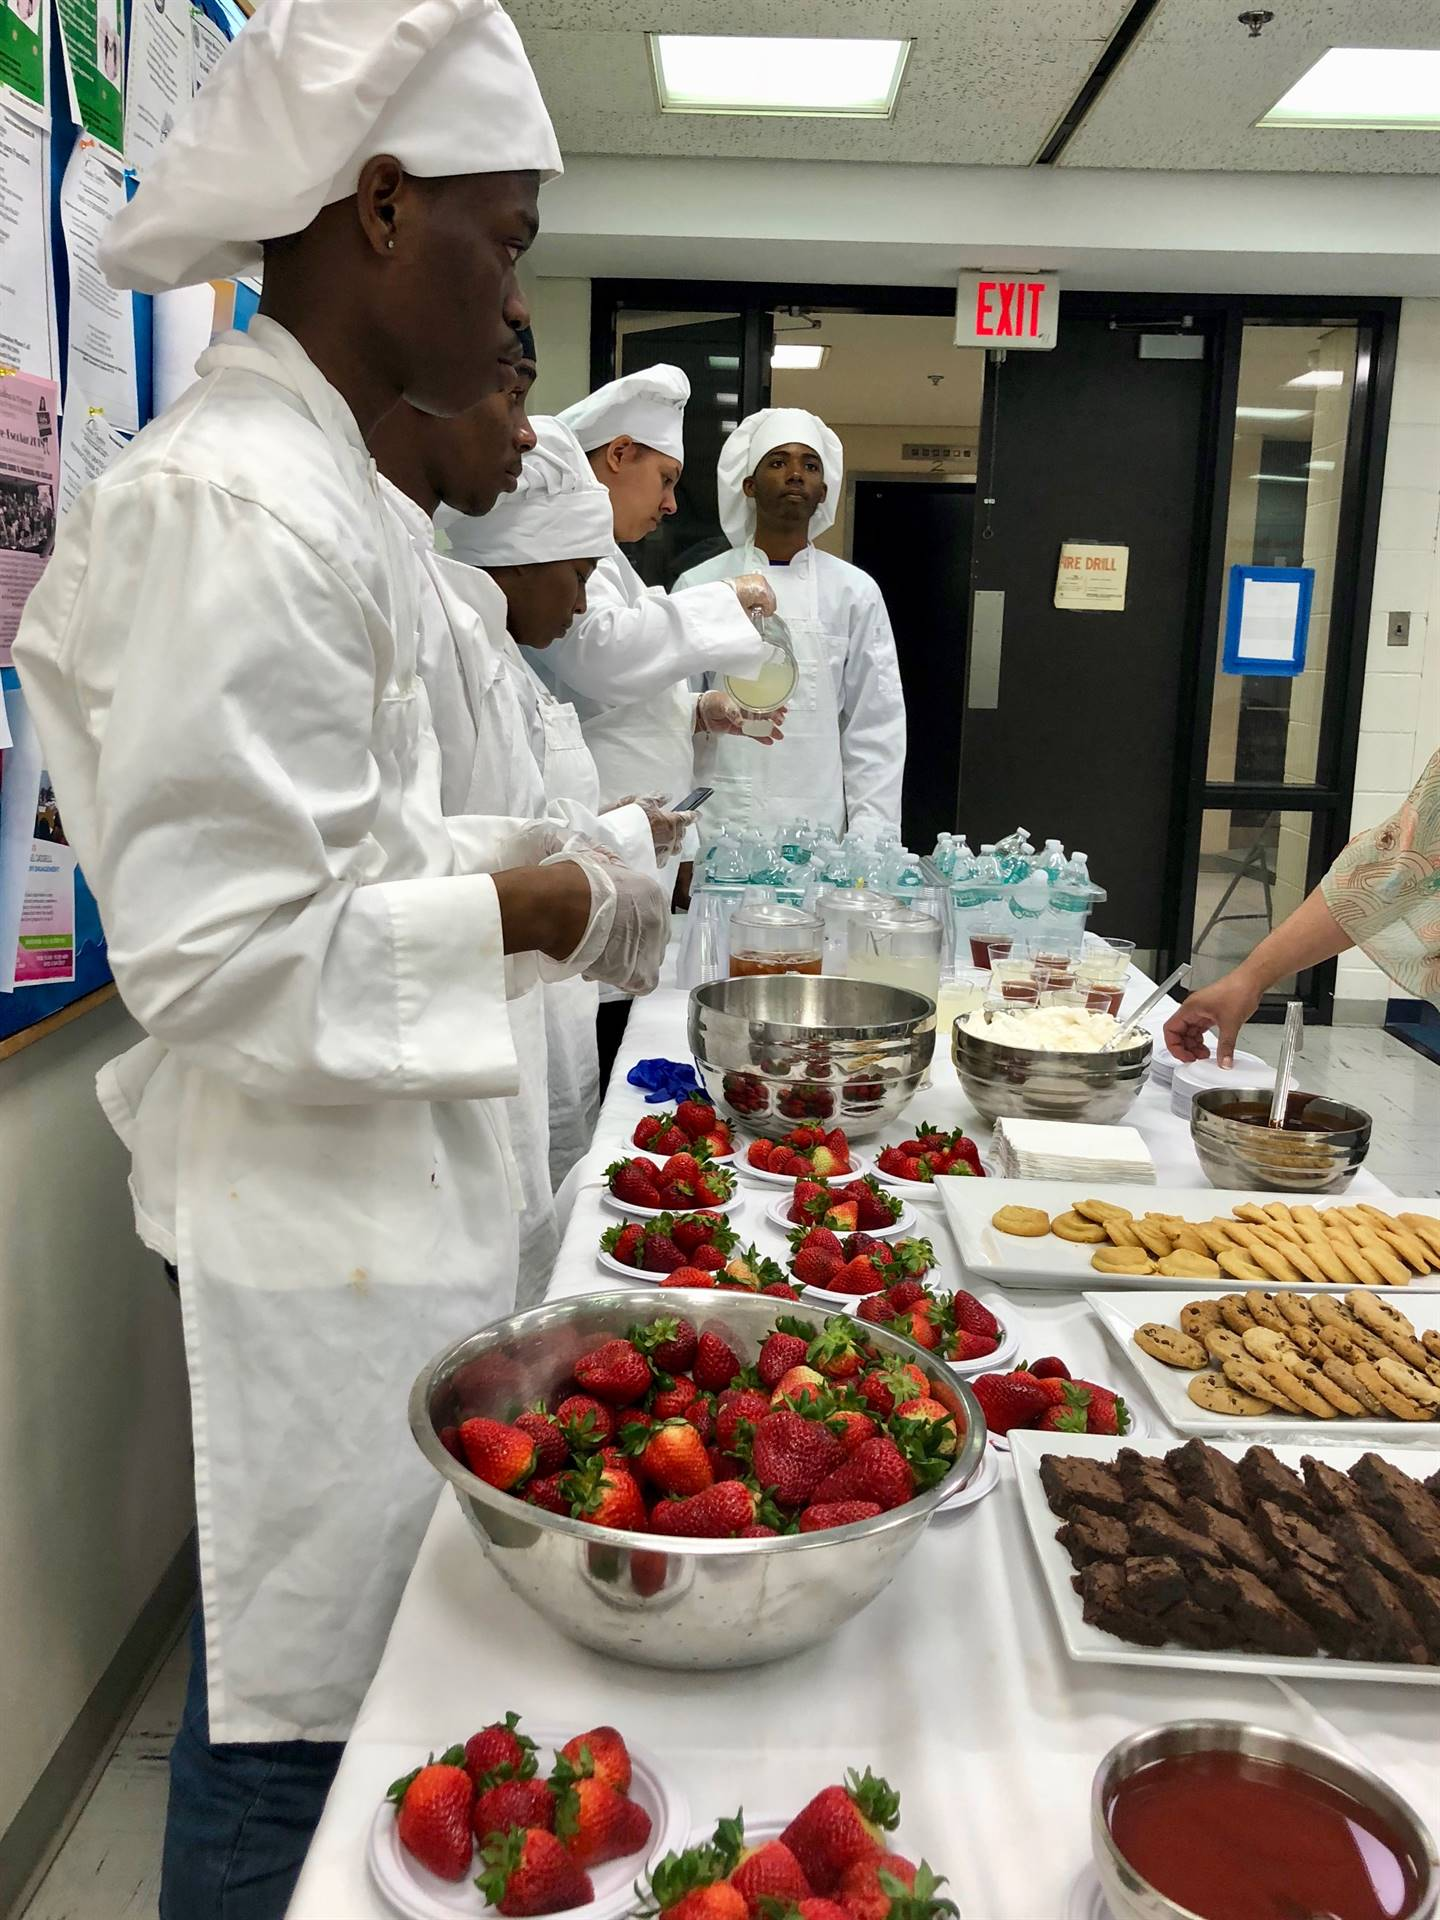 05-10-18 Daylight Twilight Culinary Arts' Students Serve Lunch at the Central Administration Buildin